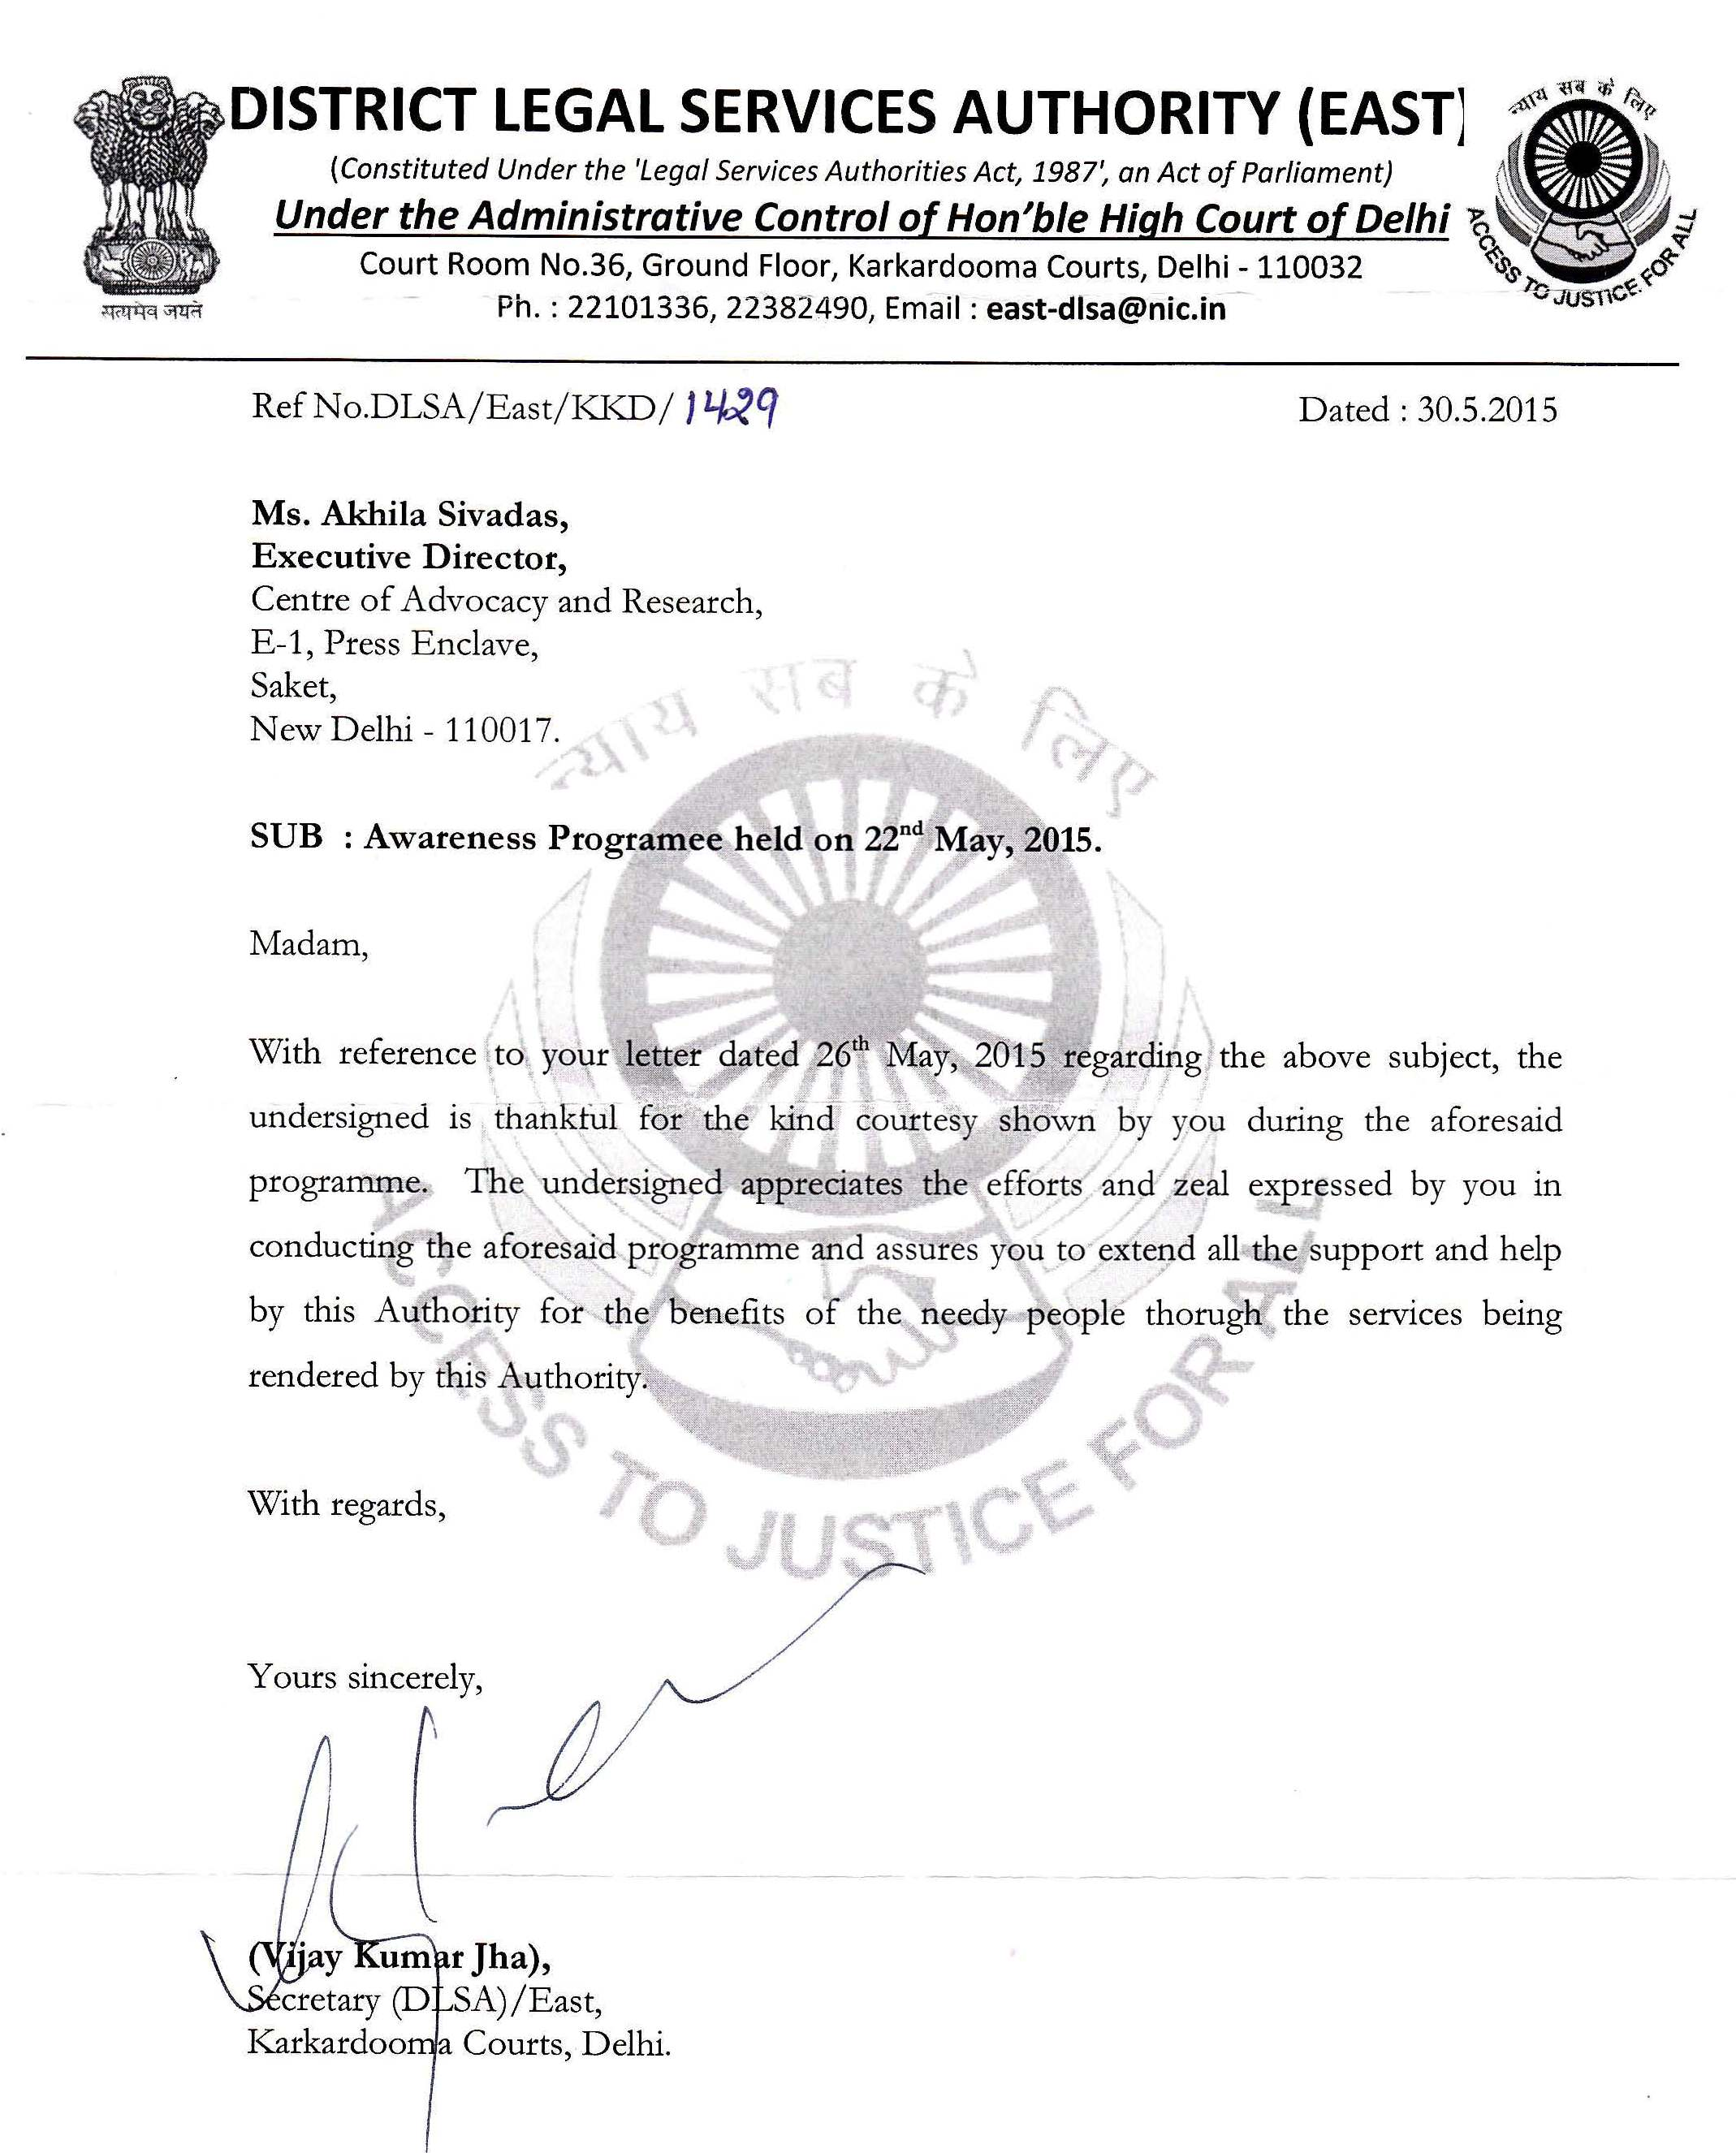 On May 30,2015, CFAR received Letter of Appreciation from District Legal Service Authority for conducting Legal Awareness Programme on 22nd May 2015